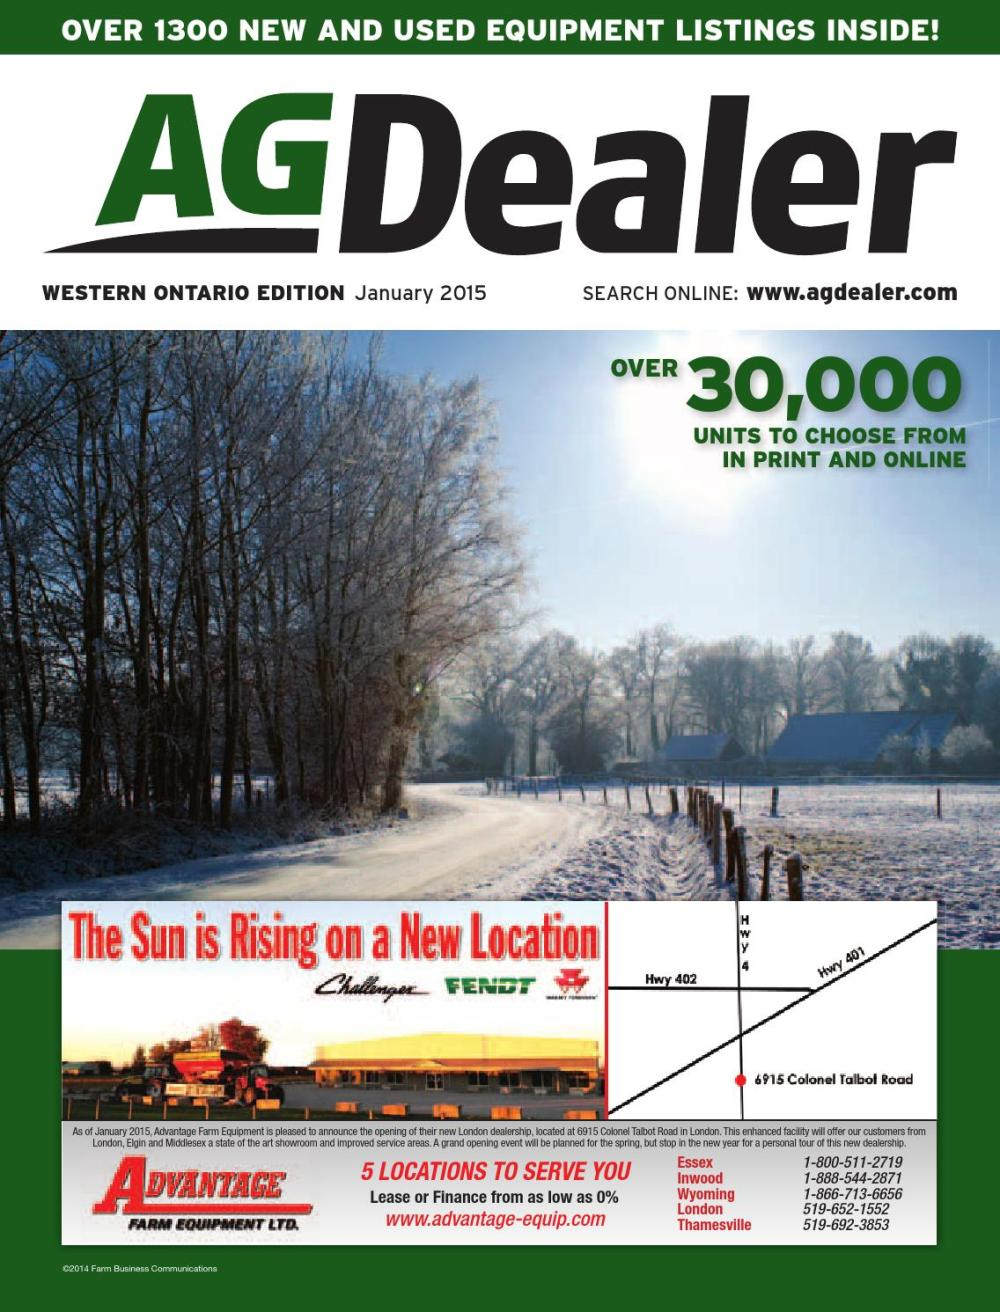 medium resolution of agdealer western ontario edition january 2015 by farm business communications issuu